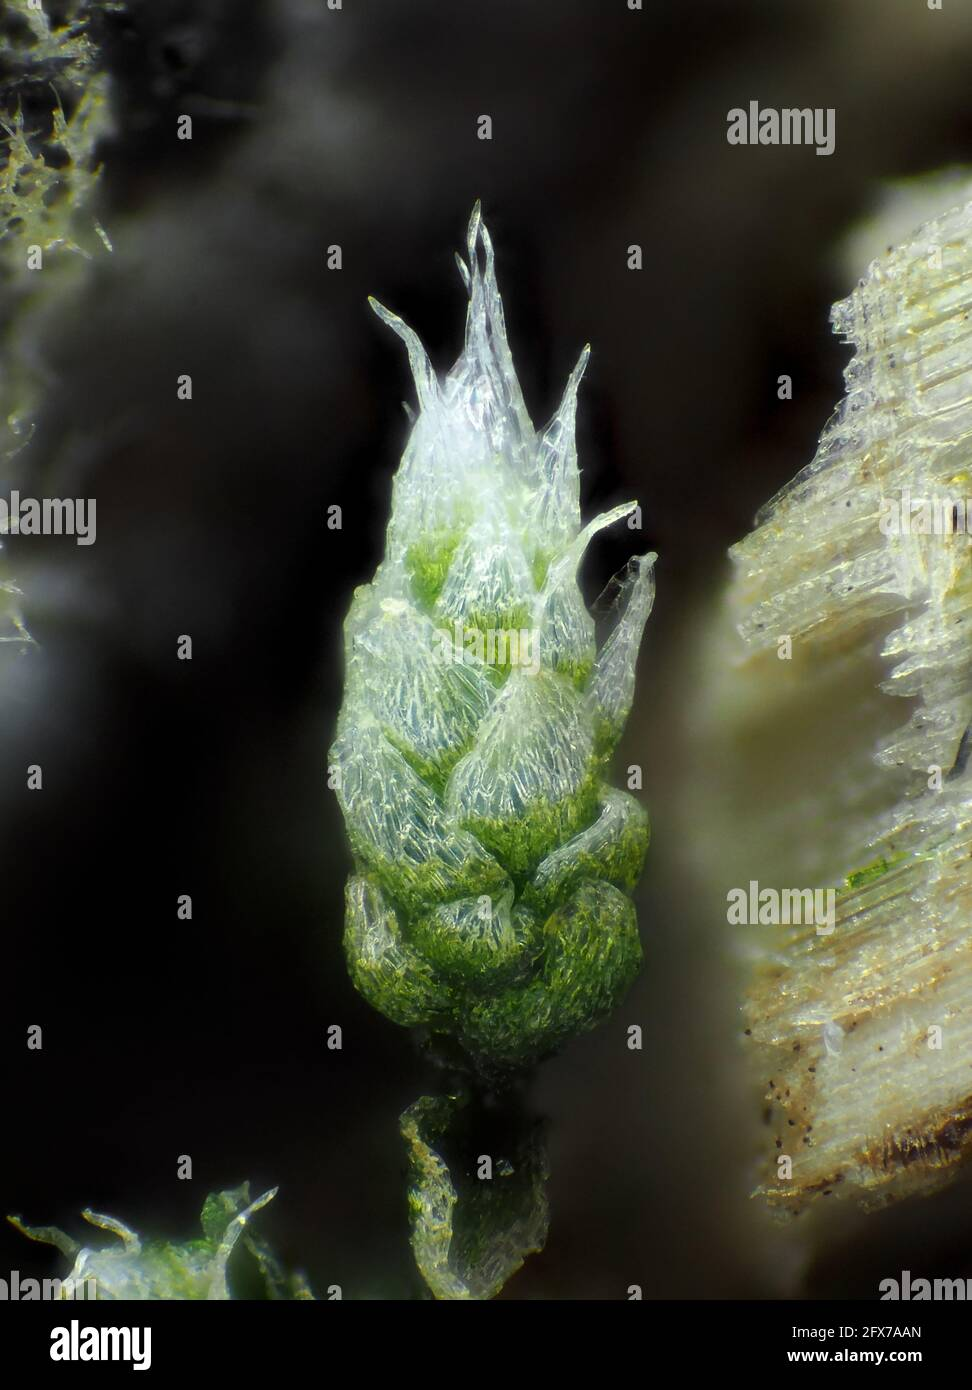 Very young moss (likely Bryum argenteum) under the microscope, vertical field of view is about 1.1mm Stock Photo